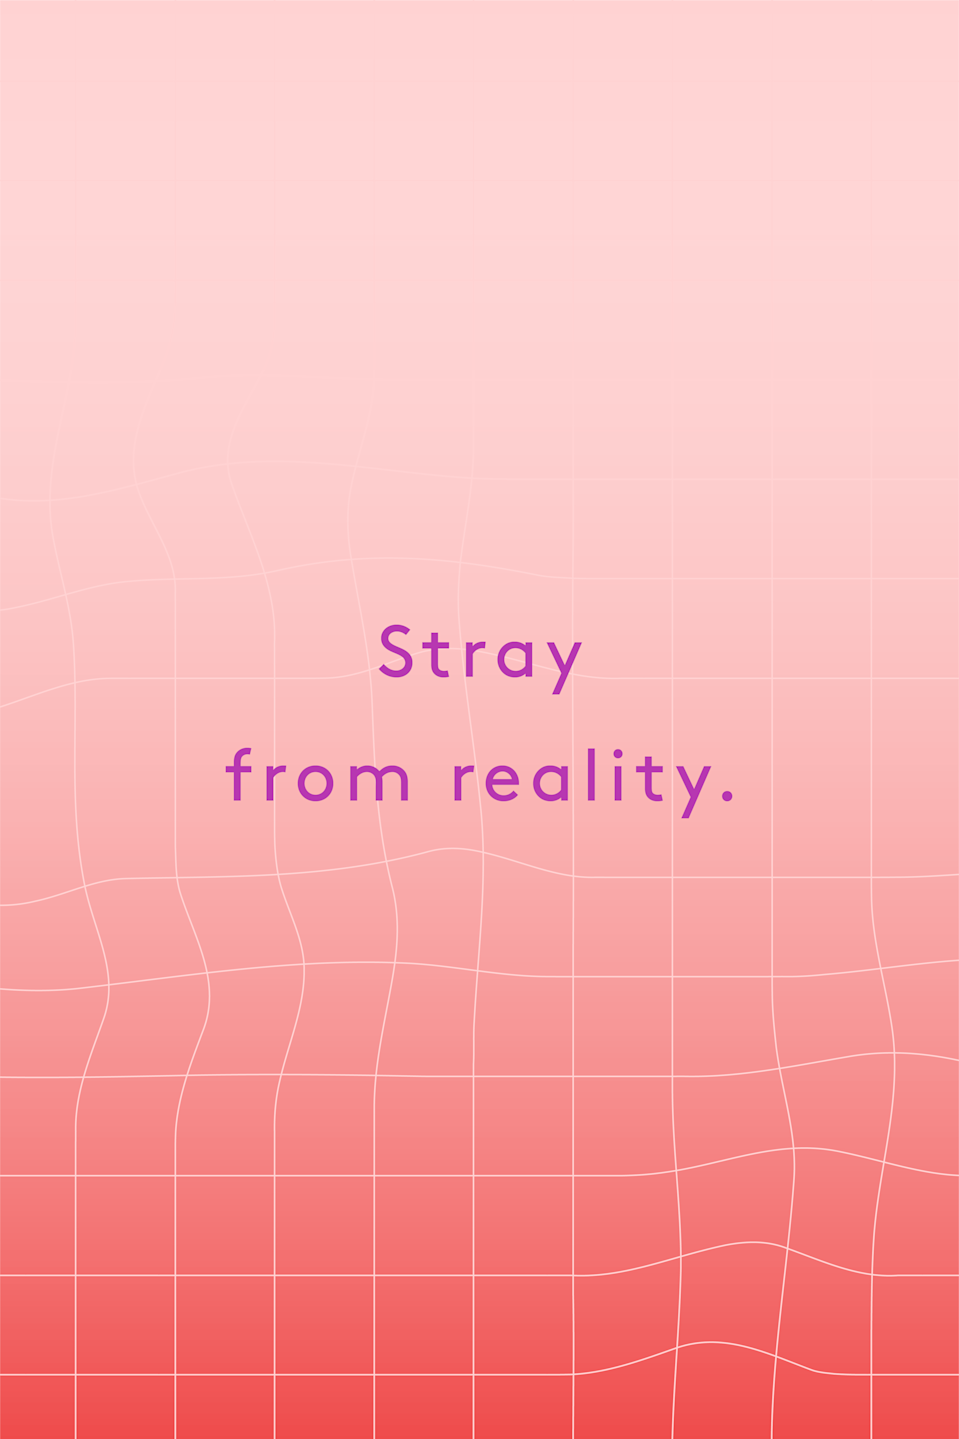 """<p><strong>Stray from reality.</strong></p><p>""""One of the coolest things about phone sex is that everything is happening in the realm of imagination, so anything is possible. Ever wanted to have sex upside-down in zero gravity on the International Space Station? Now's your chance. In fantasy, you get to be a superhero, villain, rockstar, or a groupie. Description is everything in phone sex, so if you're creating a fantasy scenario, set the scene. Enrich it with sensory adjectives and really paint a picture with your words. Imagine you're telling your partner a sexy bedtime story and you want to make it as vivid as possible."""" –<a href=""""http://www.ashleymanta.com/feminist_guide_to_phone_sex_live"""" rel=""""nofollow noopener"""" target=""""_blank"""" data-ylk=""""slk:Ashley M."""" class=""""link rapid-noclick-resp"""">Ashley M.</a></p>"""